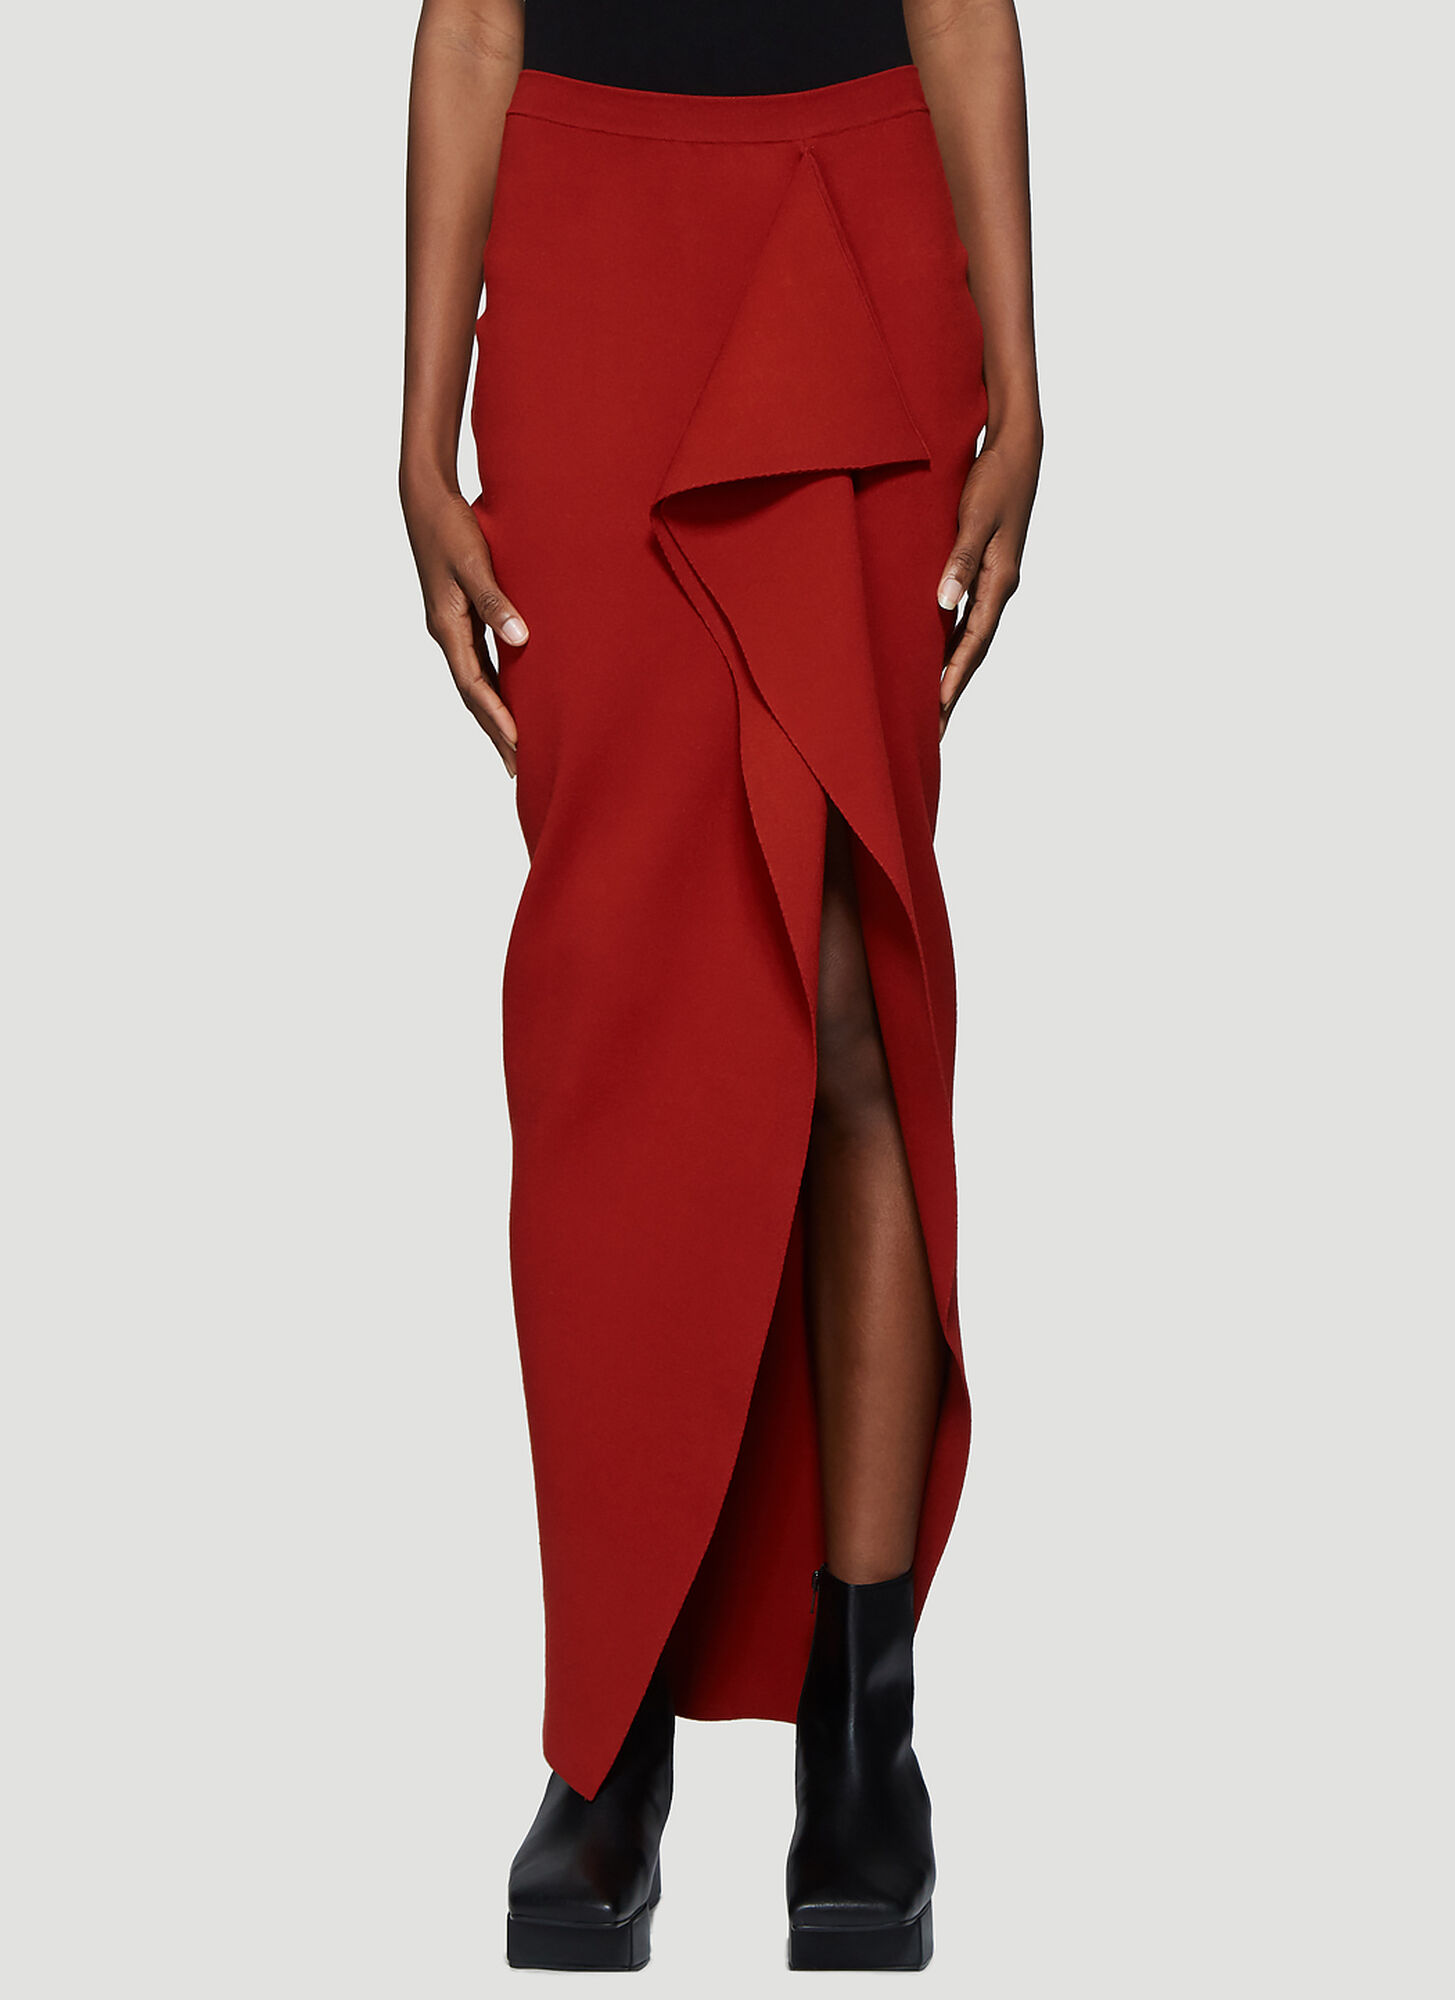 Rick Owens Short Grace Skirt in Red